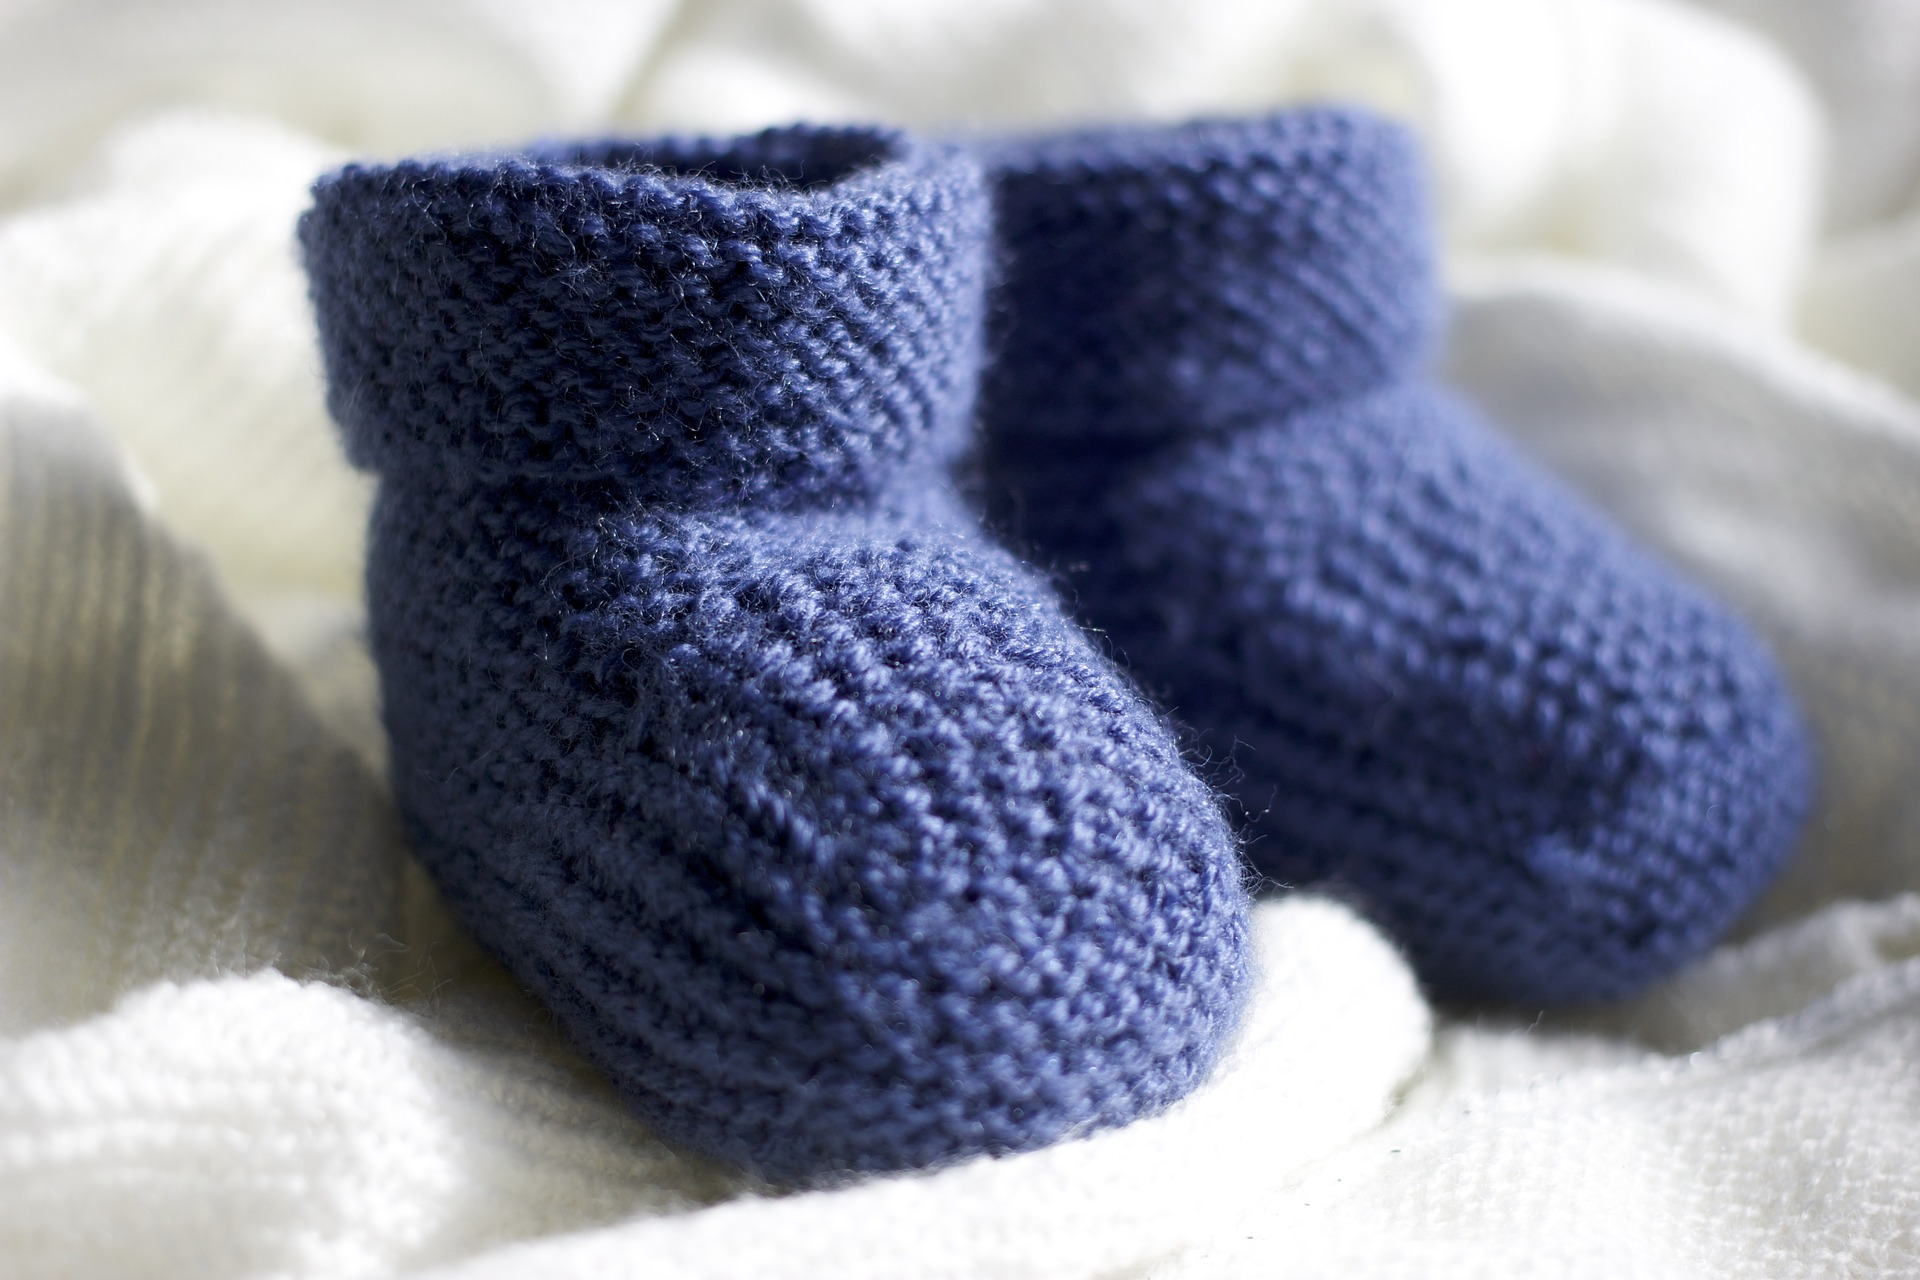 slippers-2386474_1920